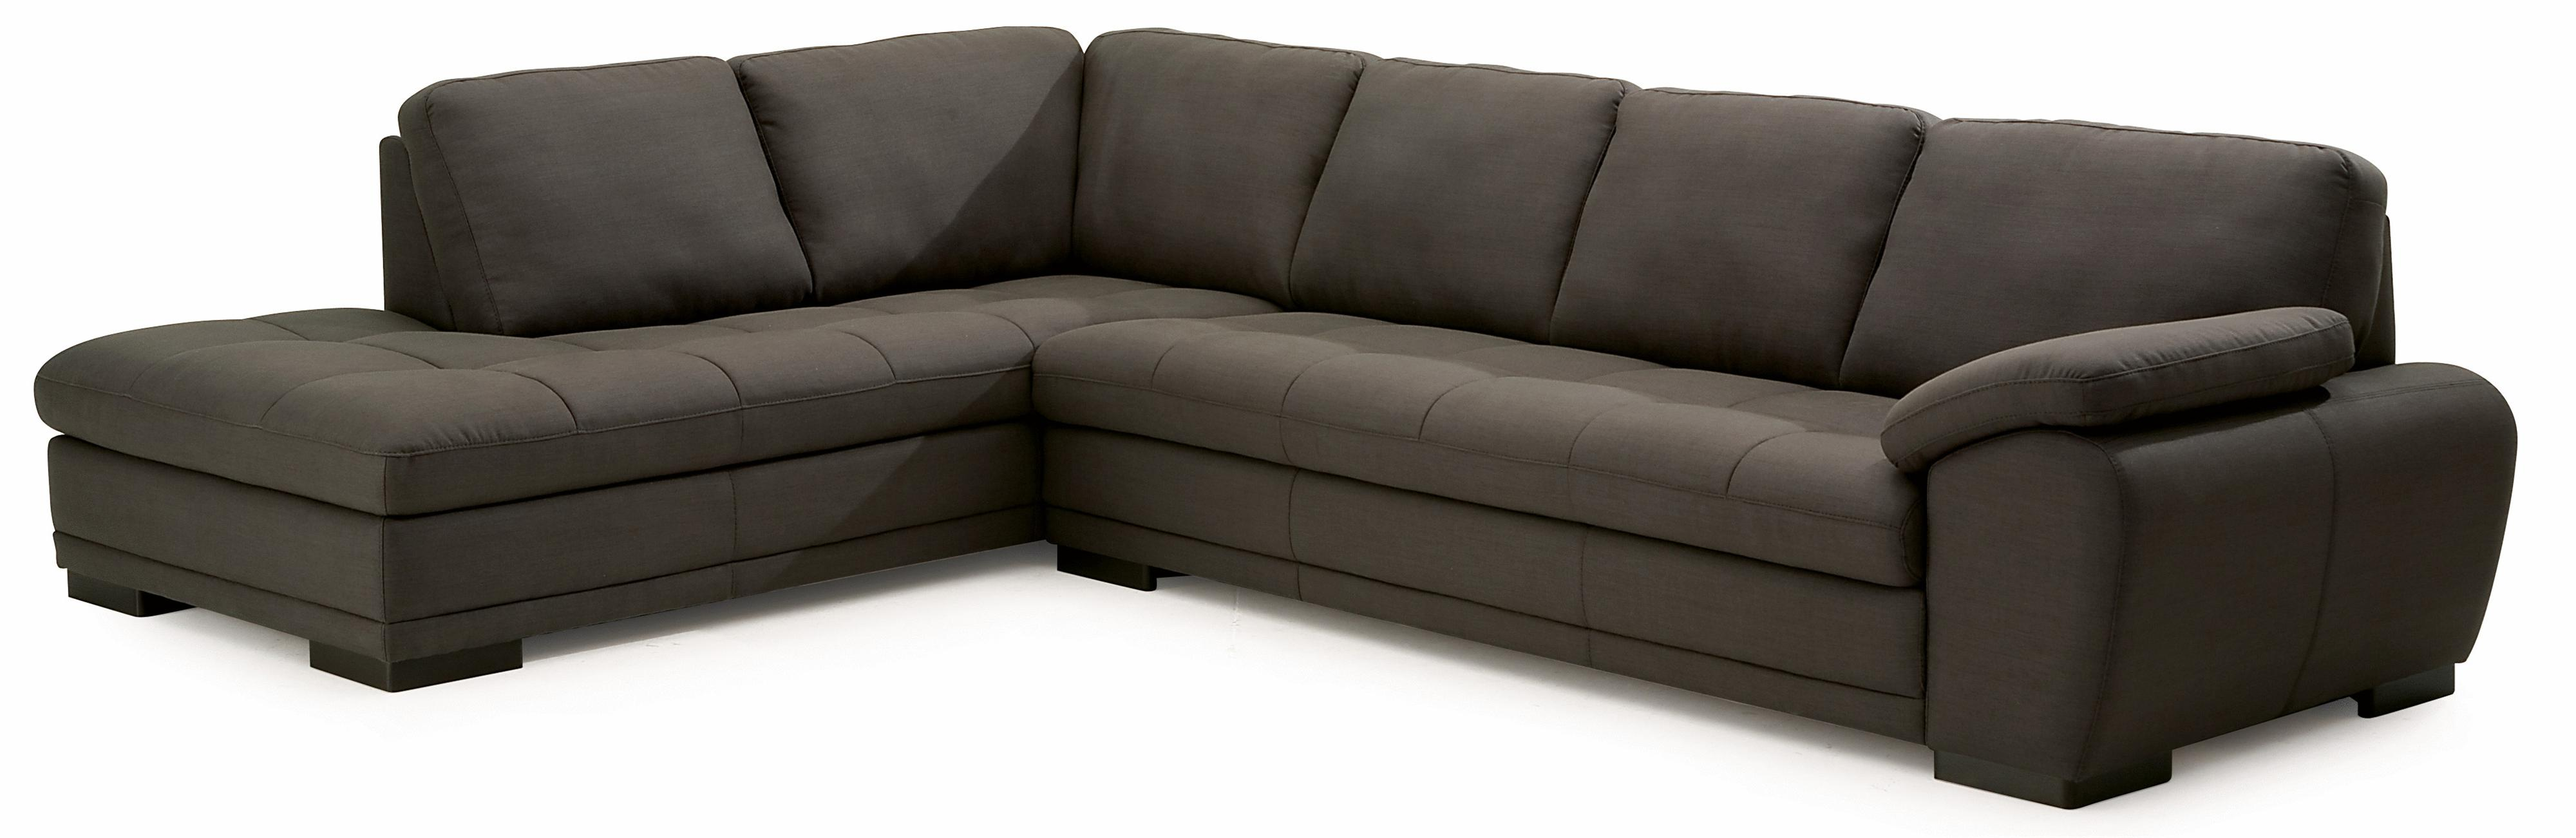 Palliser Miami Contemporary 2 Piece Sectional Sofa with Left